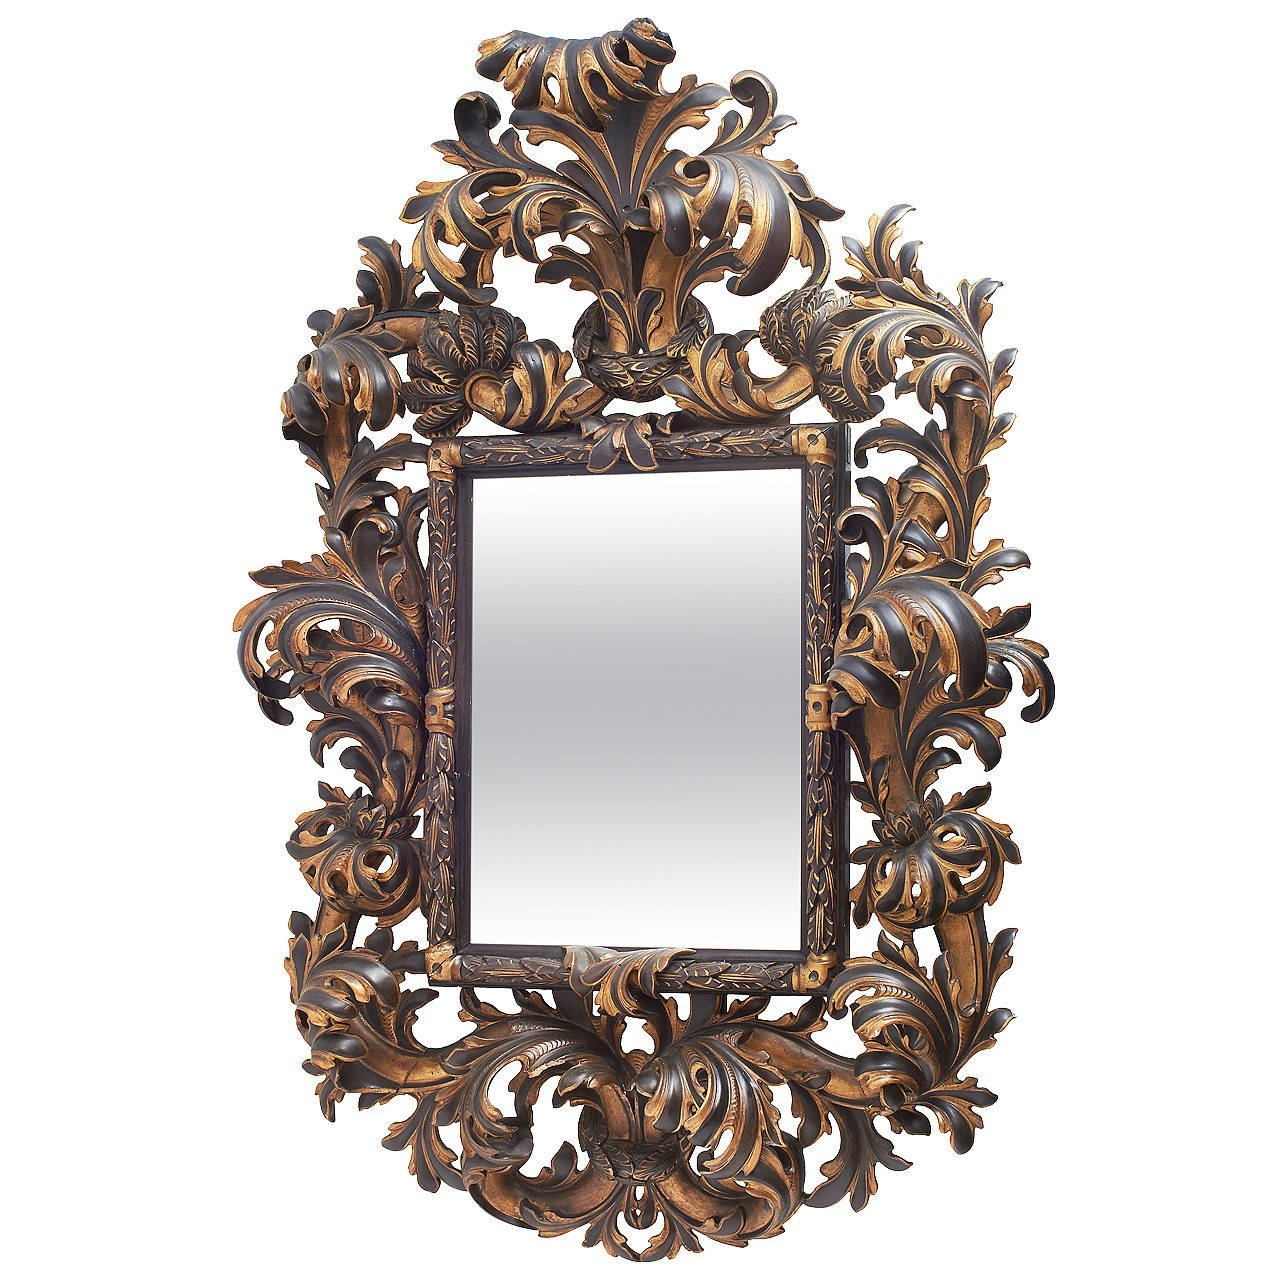 Large Antique Mirror For Sale At 1stdibs In Large Antique Mirror For Sale (View 11 of 15)